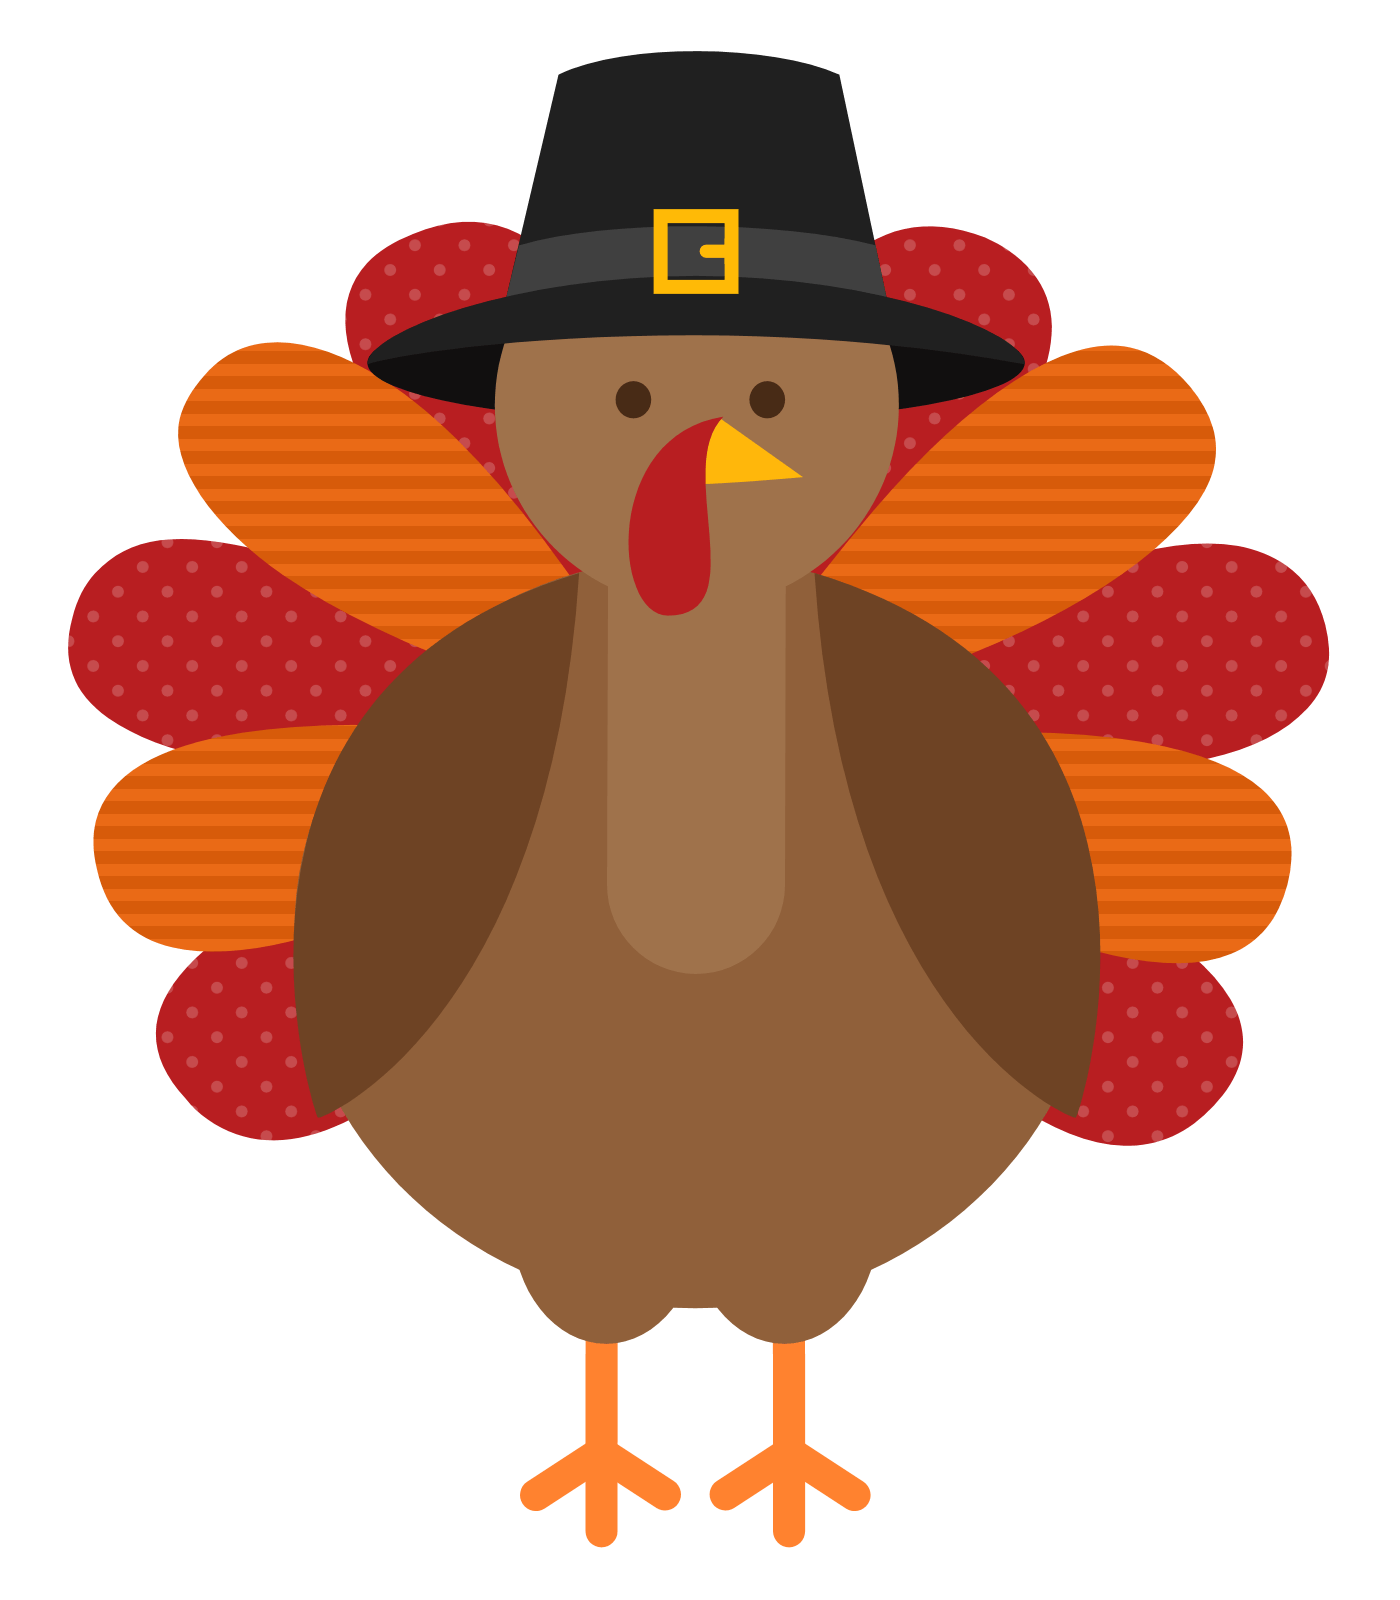 Clipart of a turkey vector Funny Turkey Clipart (61+) vector